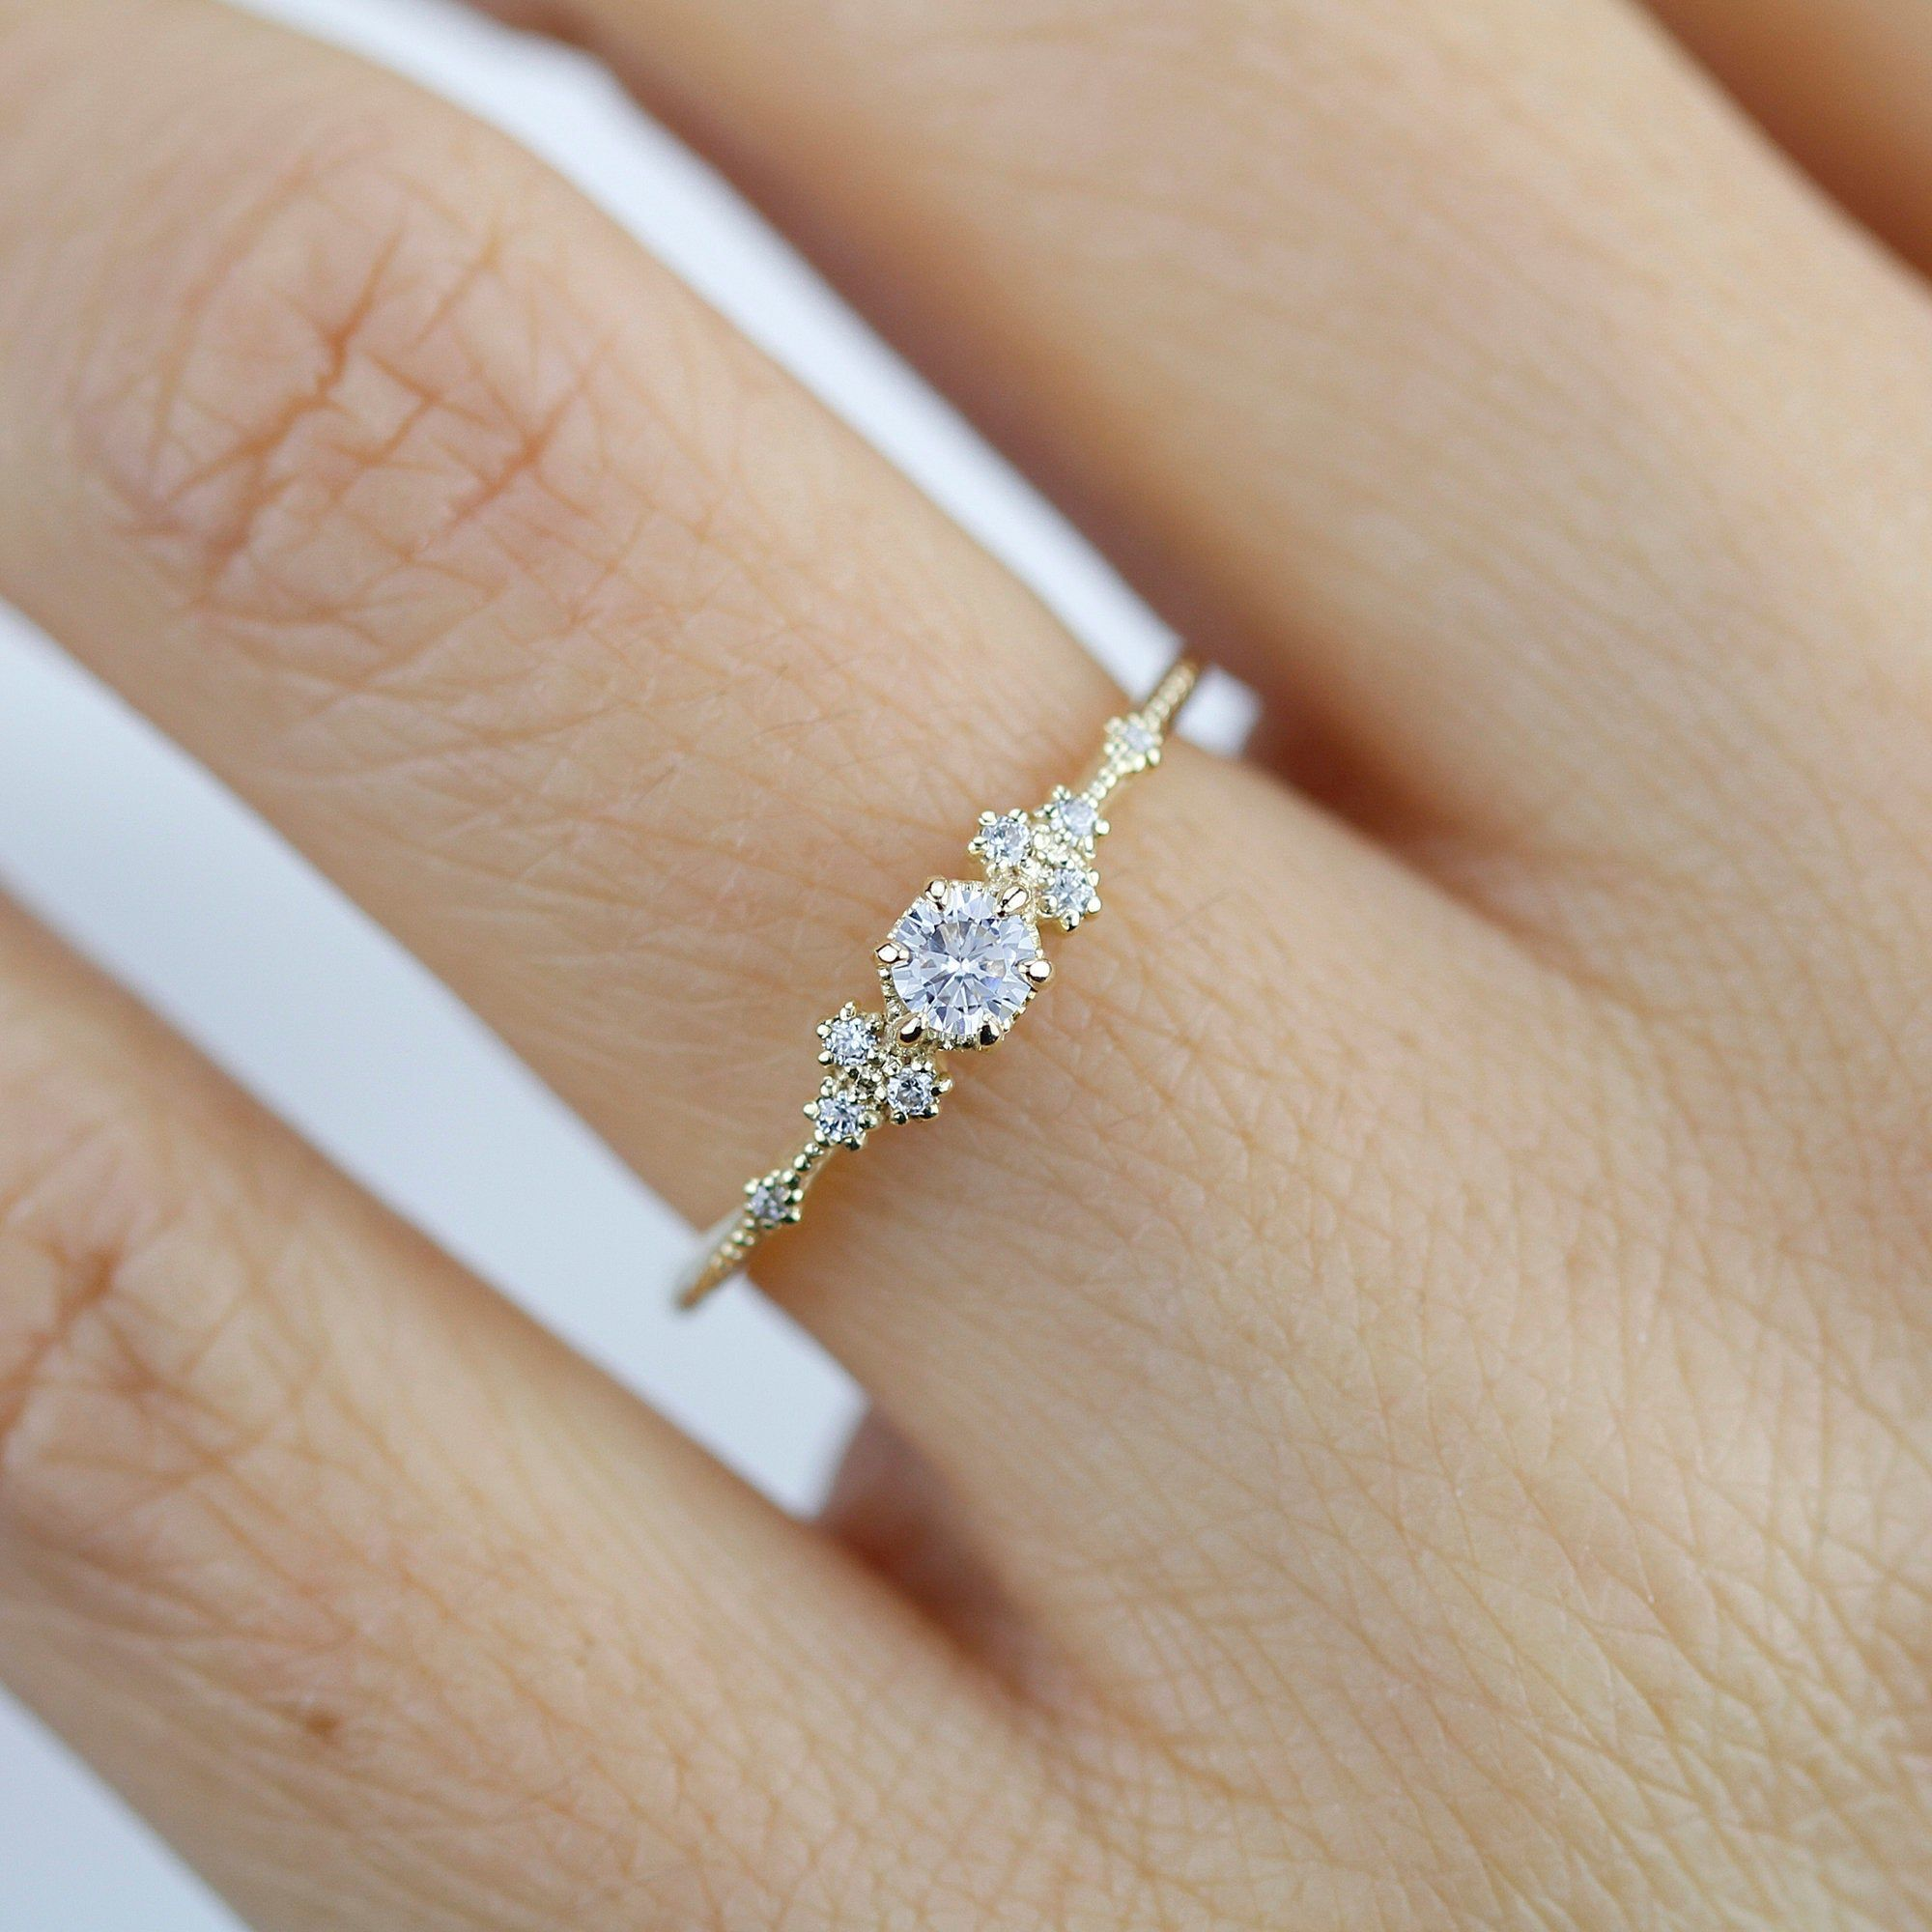 Simple Engagement Ring Engagement Ring Gold Diamond Delicate Engagement Ring Dainty Engagement Ring Minimalist Engagement Ring In 2020 Simple Engagement Rings Delicate Engagement Ring Minimalist Engagement Ring